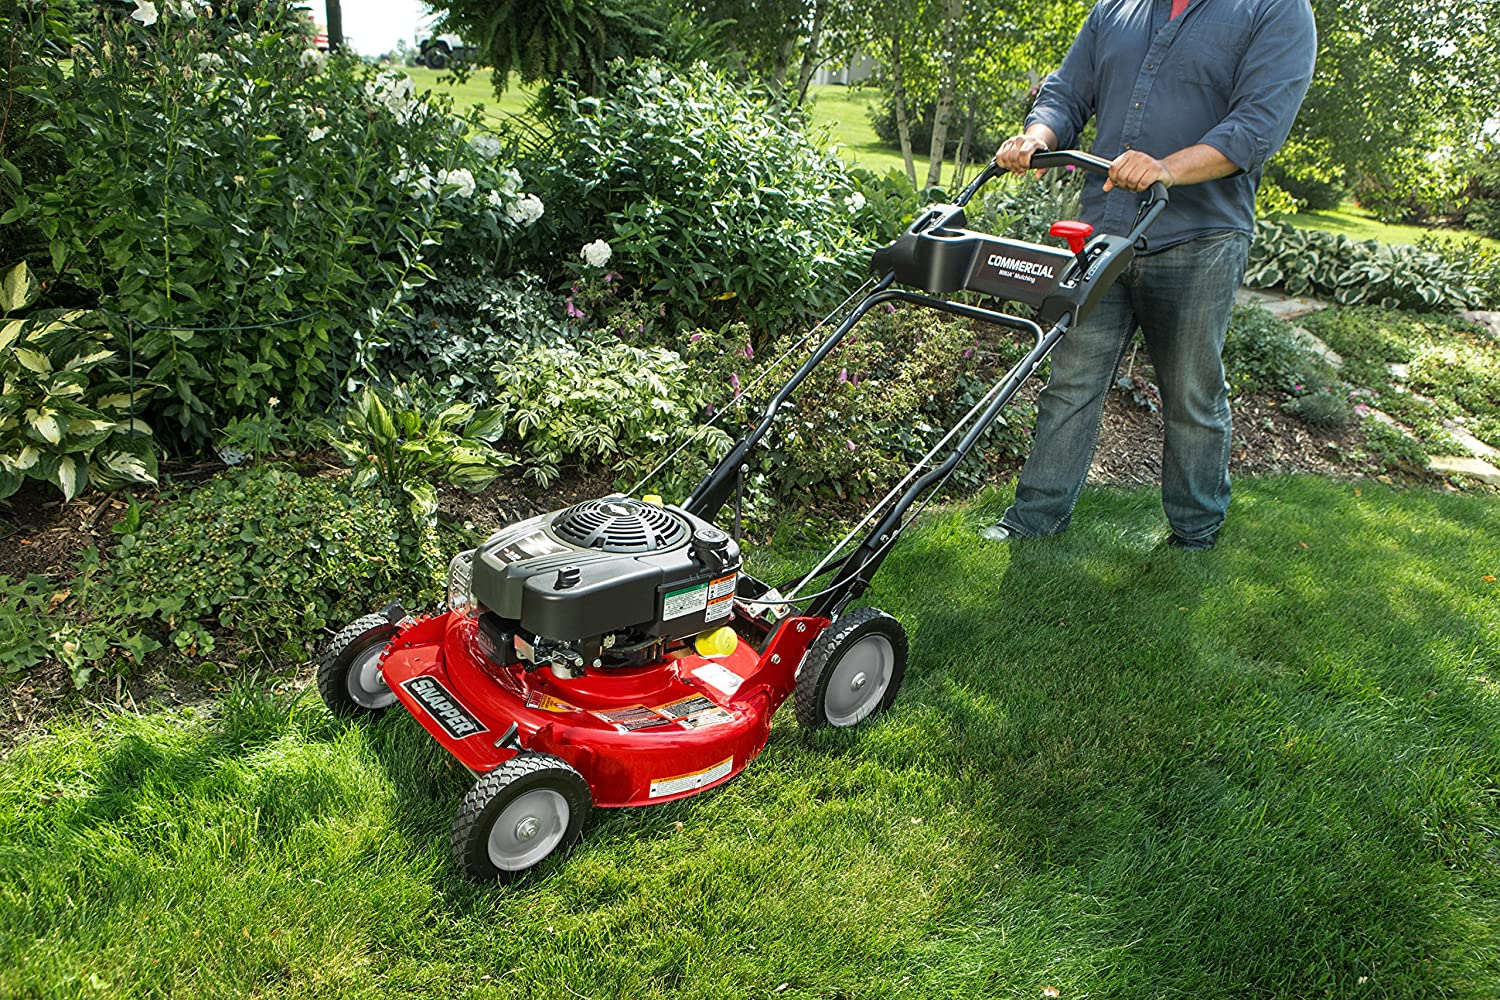 Snapper CRP218520 / 7800968 Commercial Series Lawn Mower